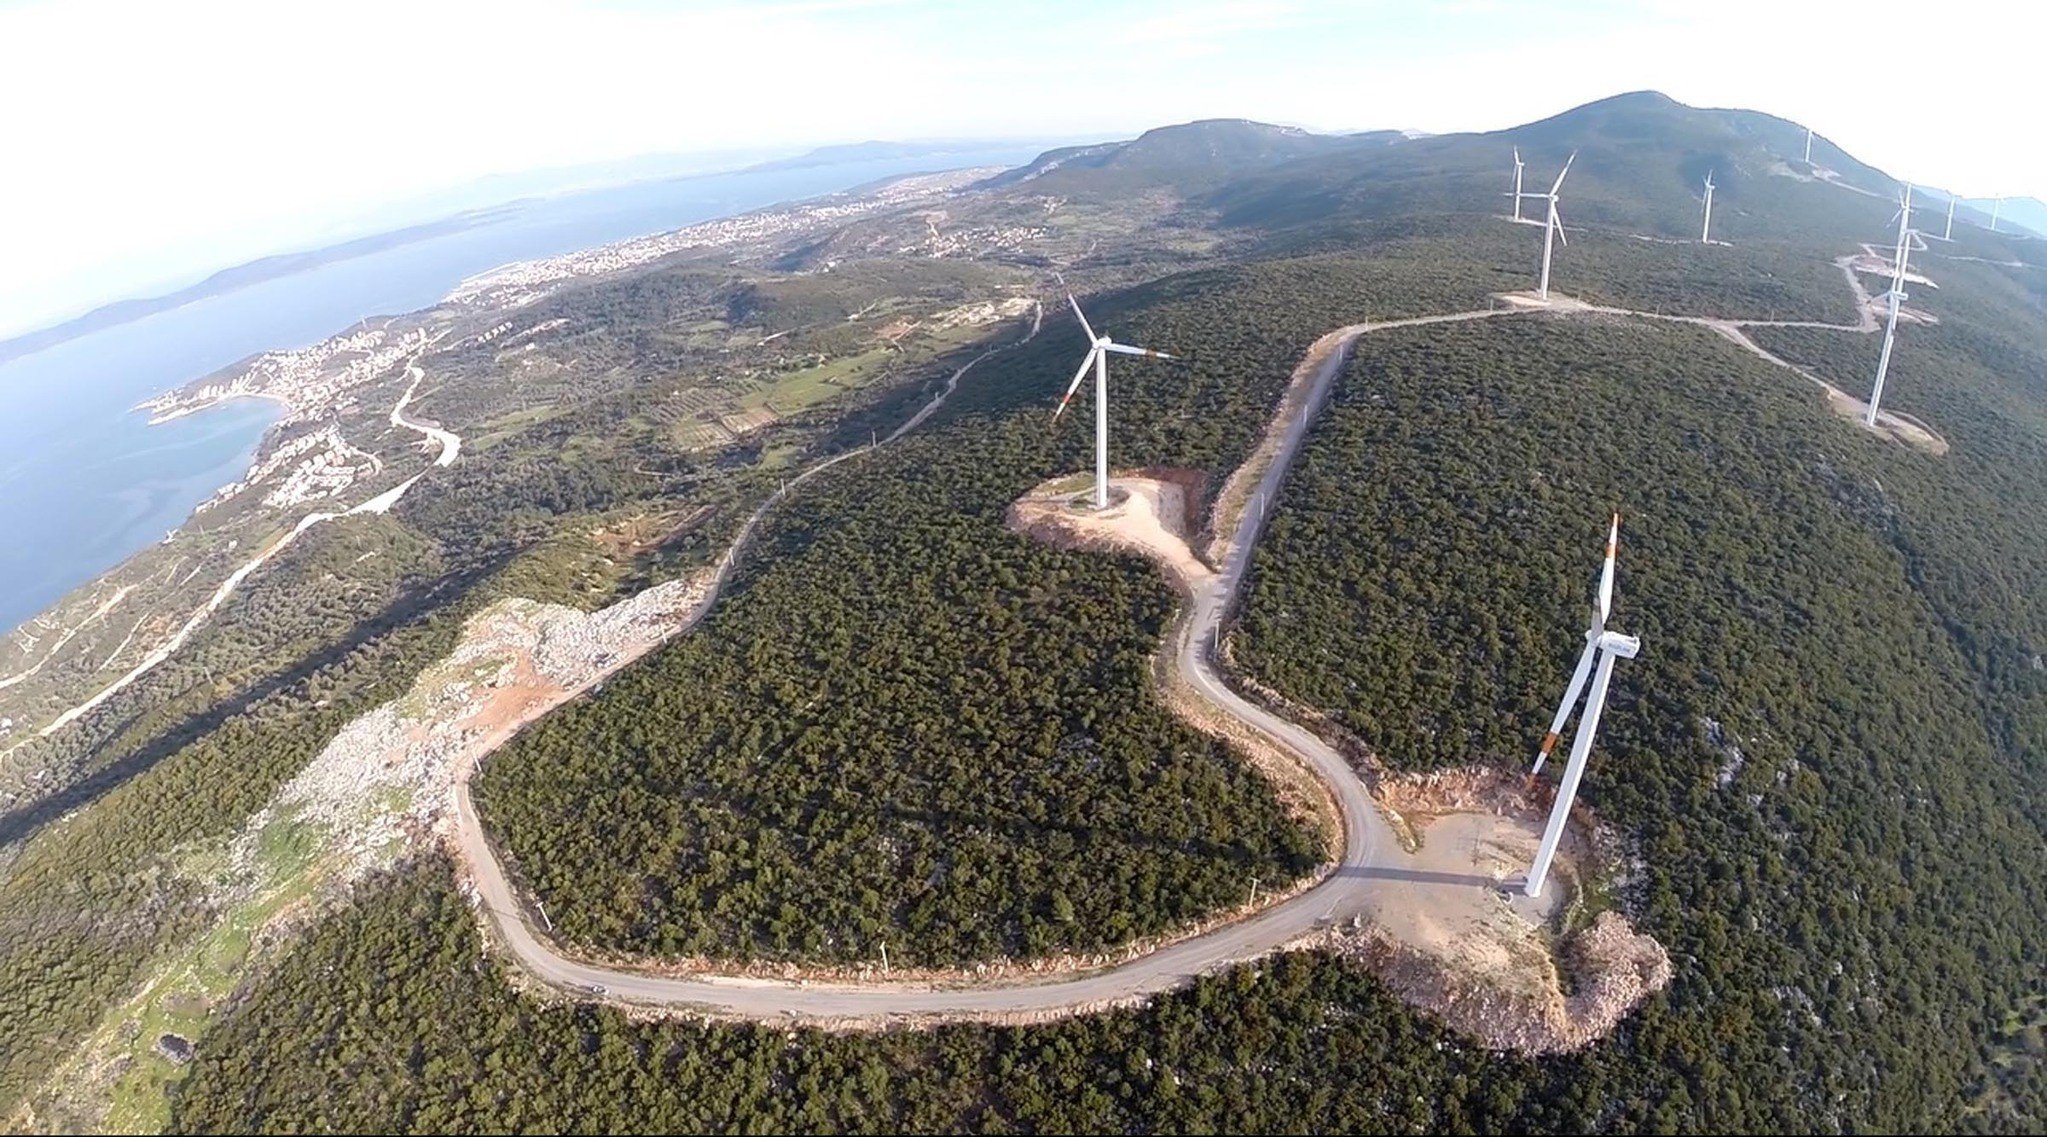 Wind power capacity reached 7,000 MW by the end of November 2018 and a major portion of this capacity u2013 5,700 MW u2013 started operating in the period of 2013 to 2018.